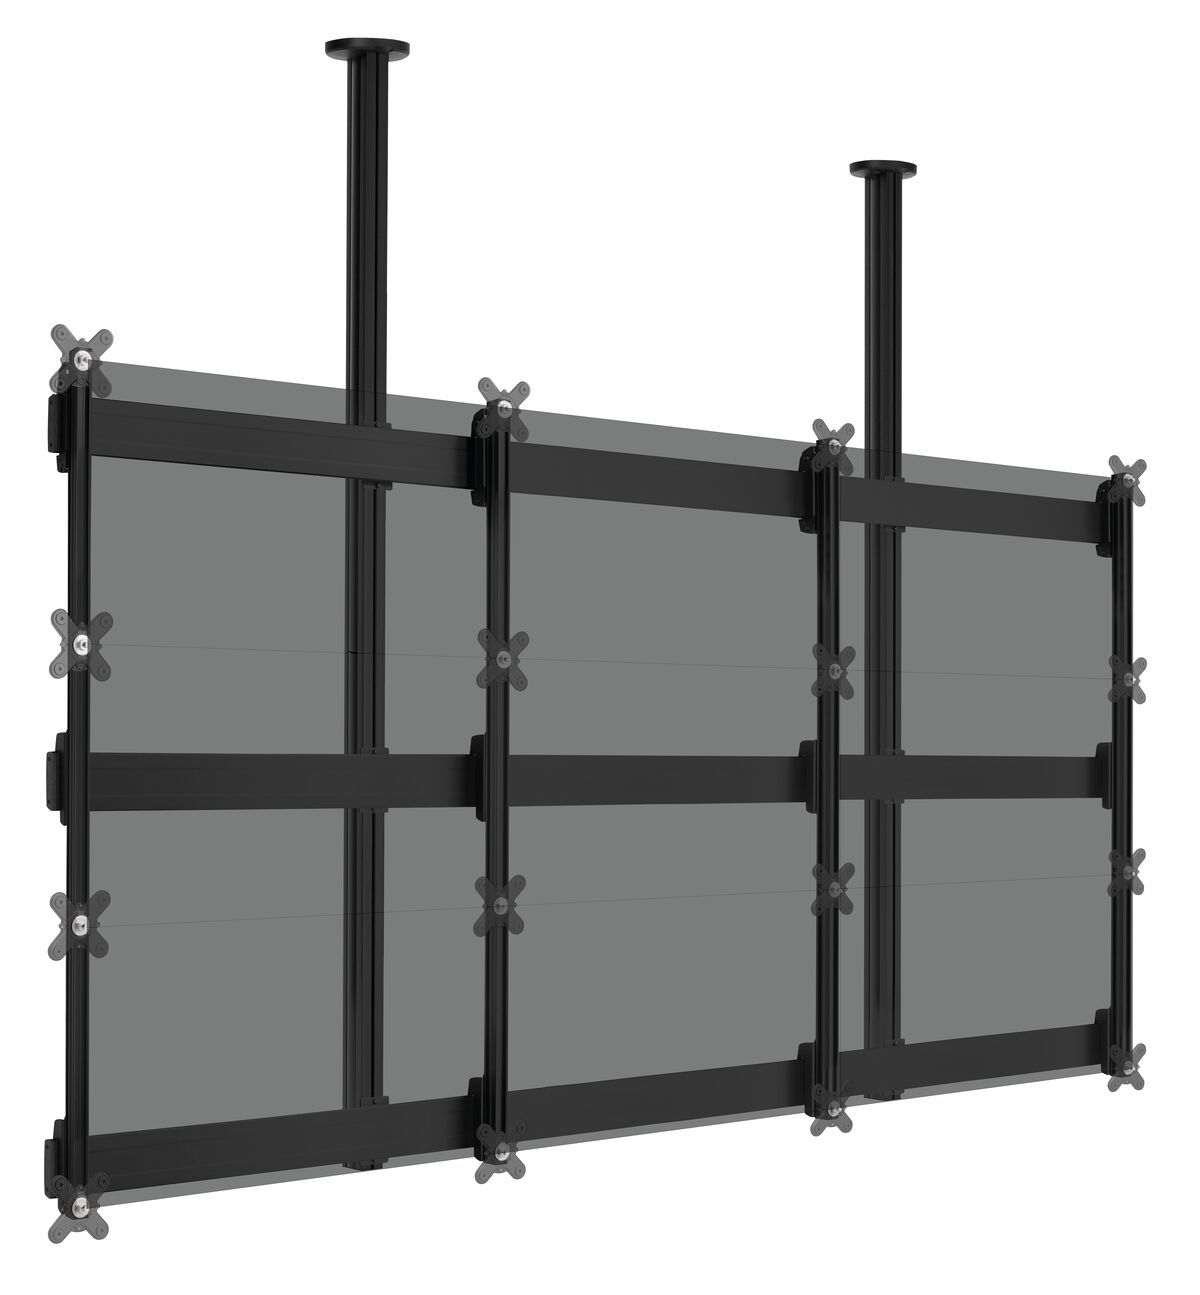 Vogel's CVWB3355 UniSee video wall ceiling solution 3x3 - Application